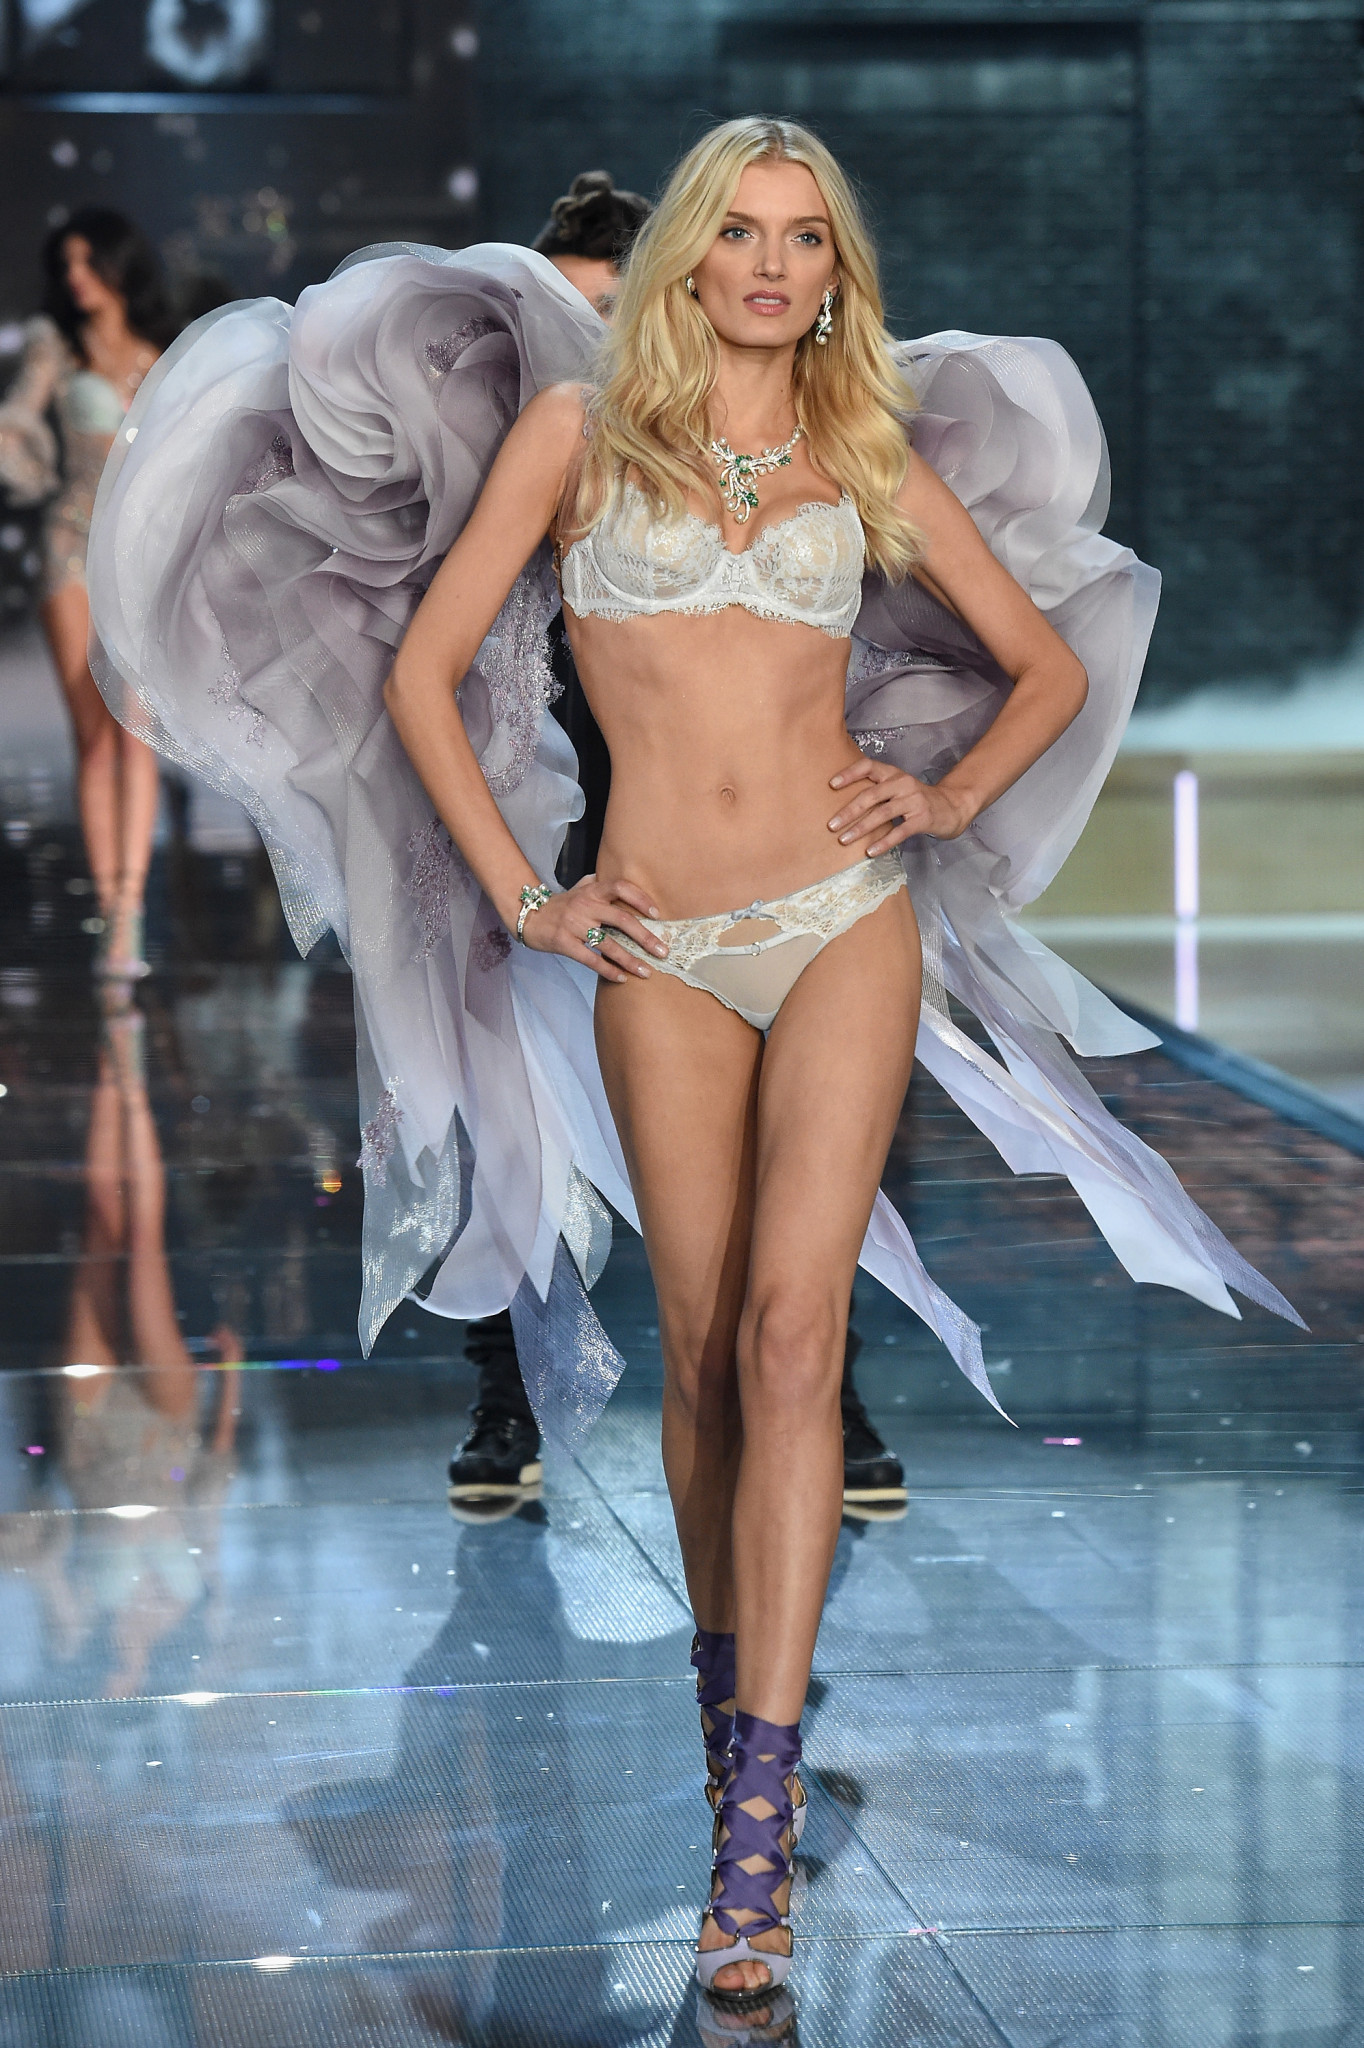 NEW YORK, NY - NOVEMBER 10: Model Lily Donaldson from United Kingdom walks the runway during the 2015 Victoria's Secret Fashion Show at Lexington Avenue Armory on November 10, 2015 in New York City.